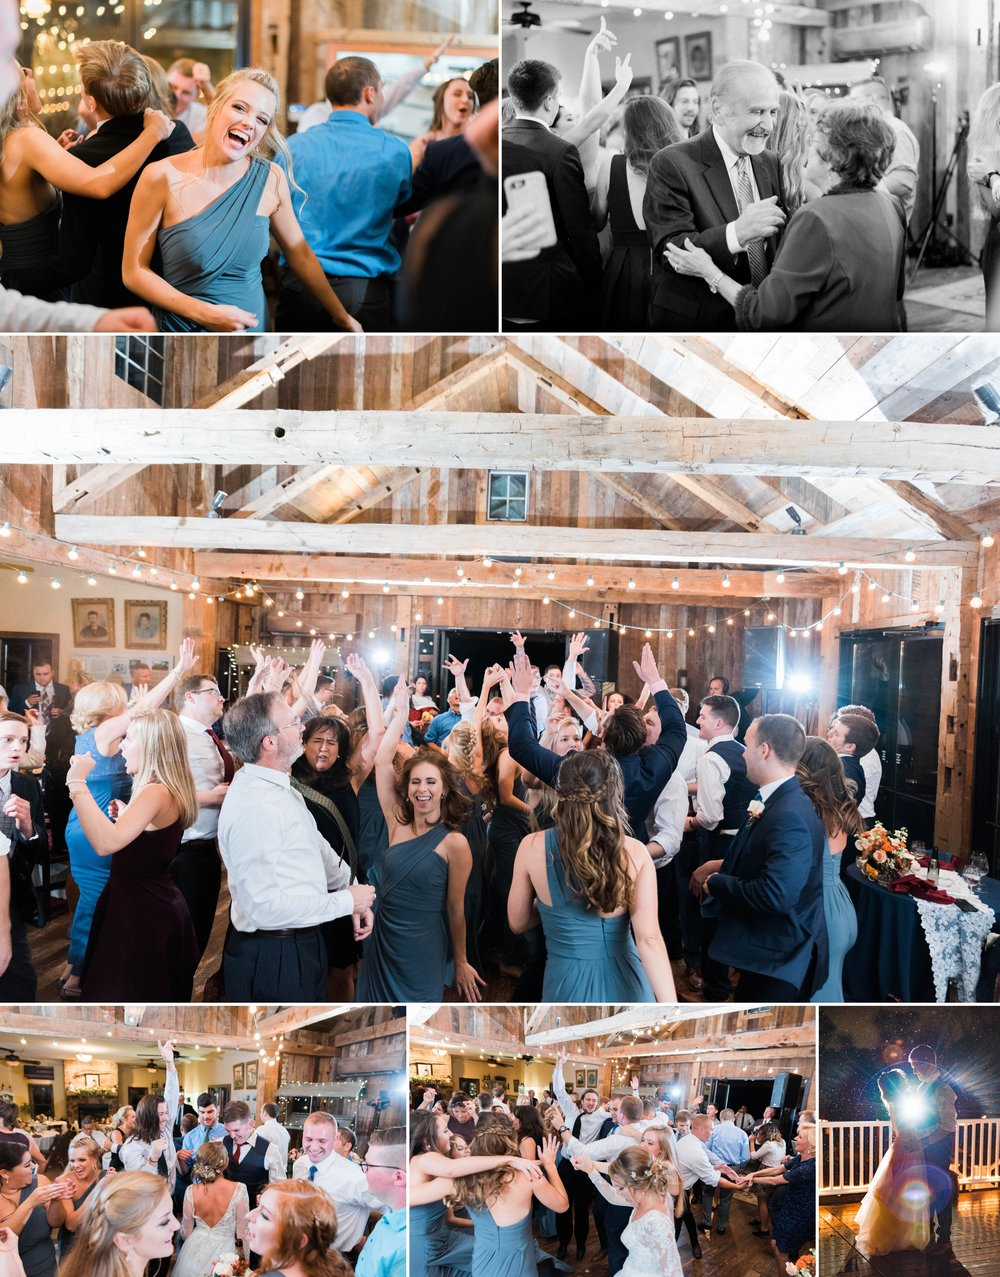 GrantElizabeth_wineryatbullrun_DCwedding_Virginiaweddingphotographer 3.jpg